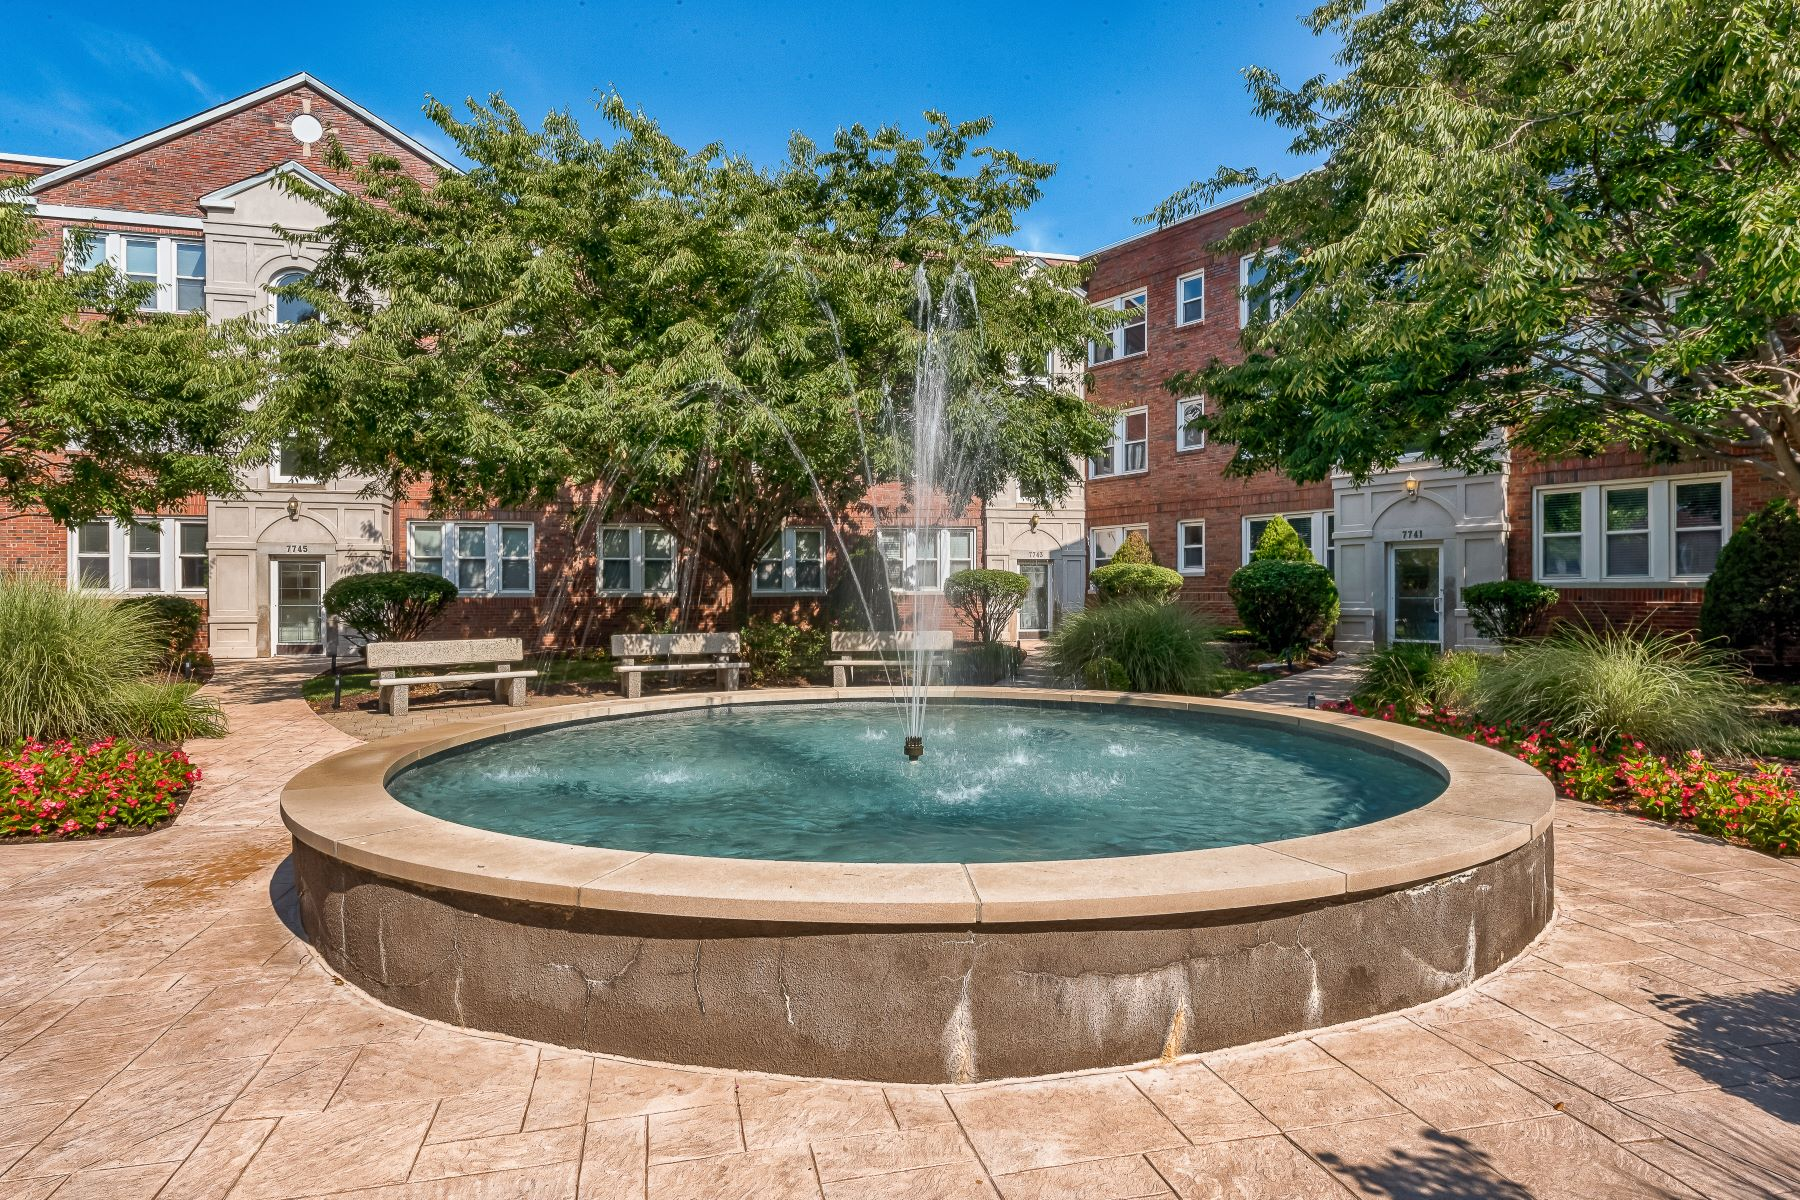 Additional photo for property listing at Fountain View at Old Town Clayton 7747 Kingsbury Boulevard #31 Clayton, Missouri 63105 United States